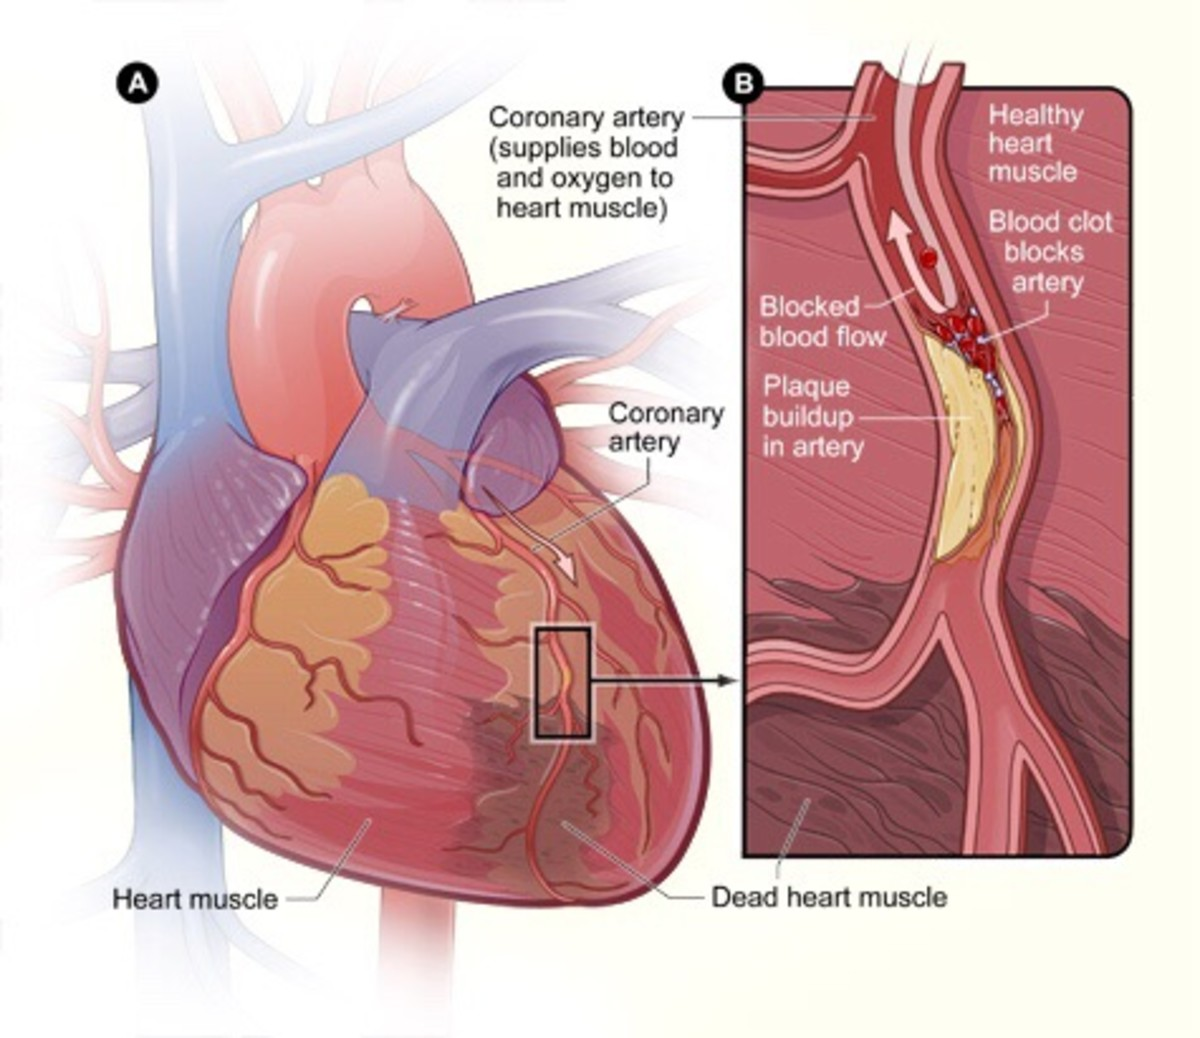 Excess LDL cholesterol may cause plaque and a blood clot in a coronary artery.